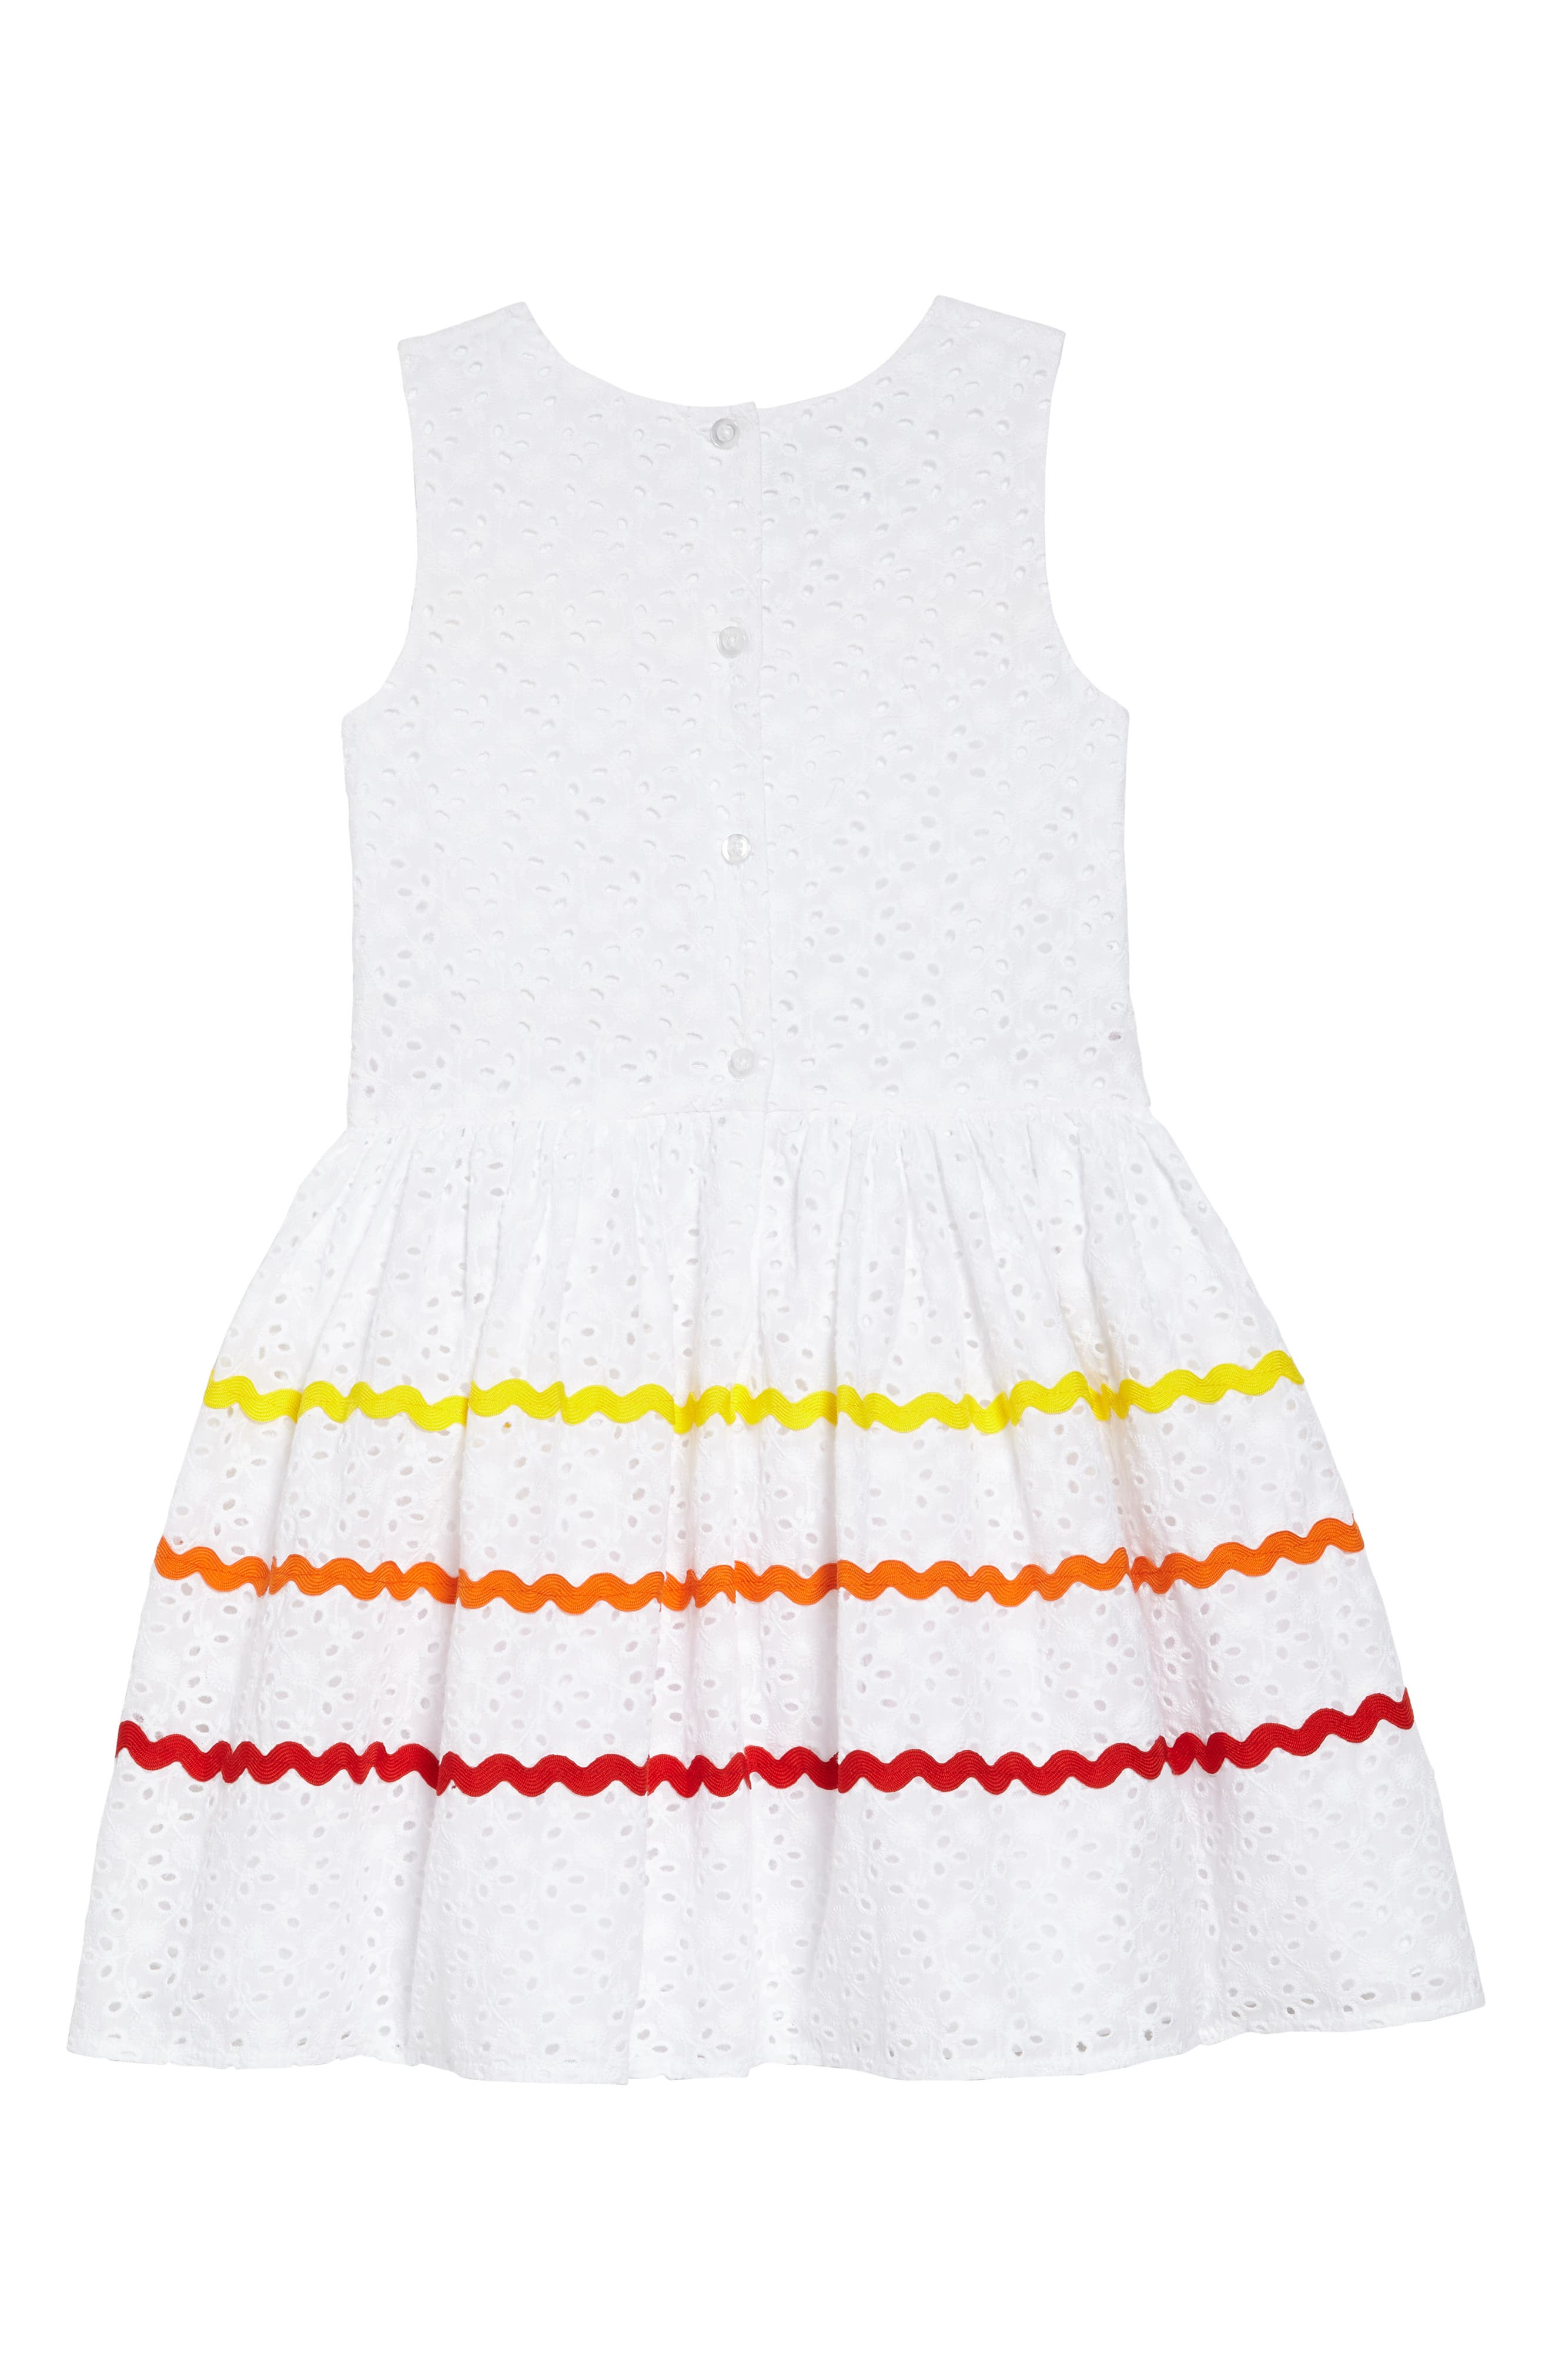 Rickrack Stripe Eyelet Dress,                             Alternate thumbnail 2, color,                             100